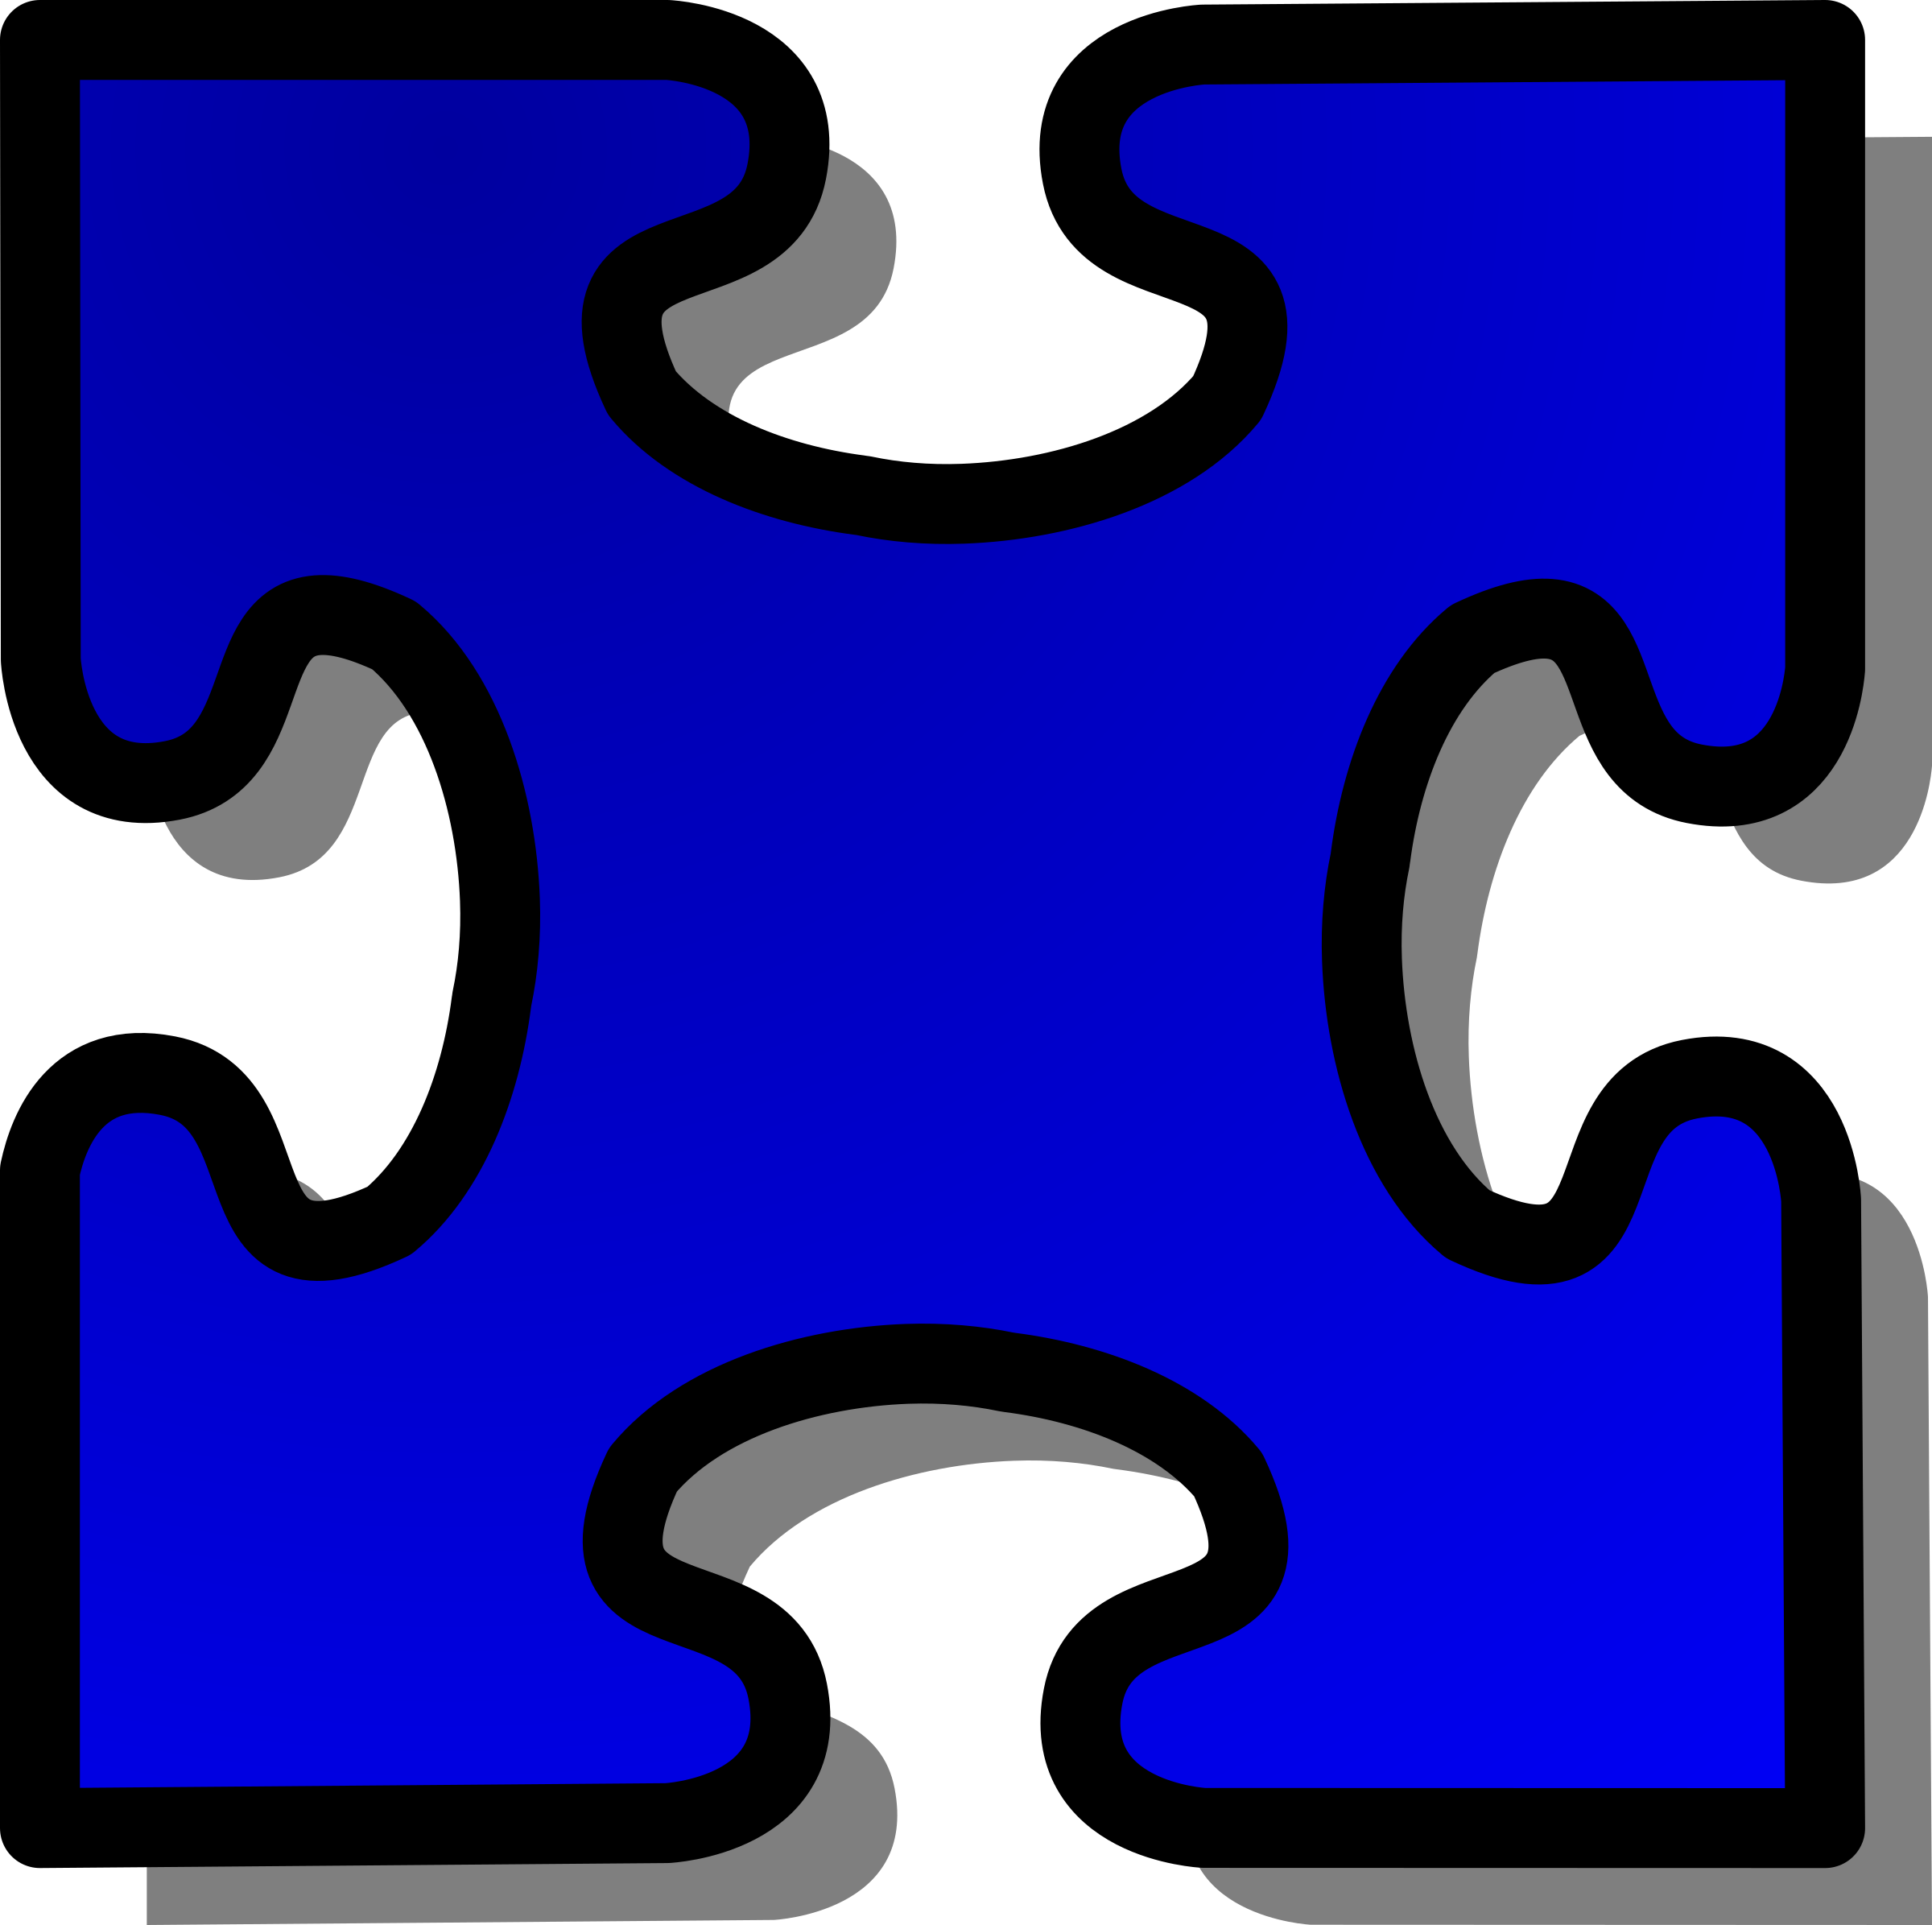 Blue Jigsaw piece 03 by nicubunu